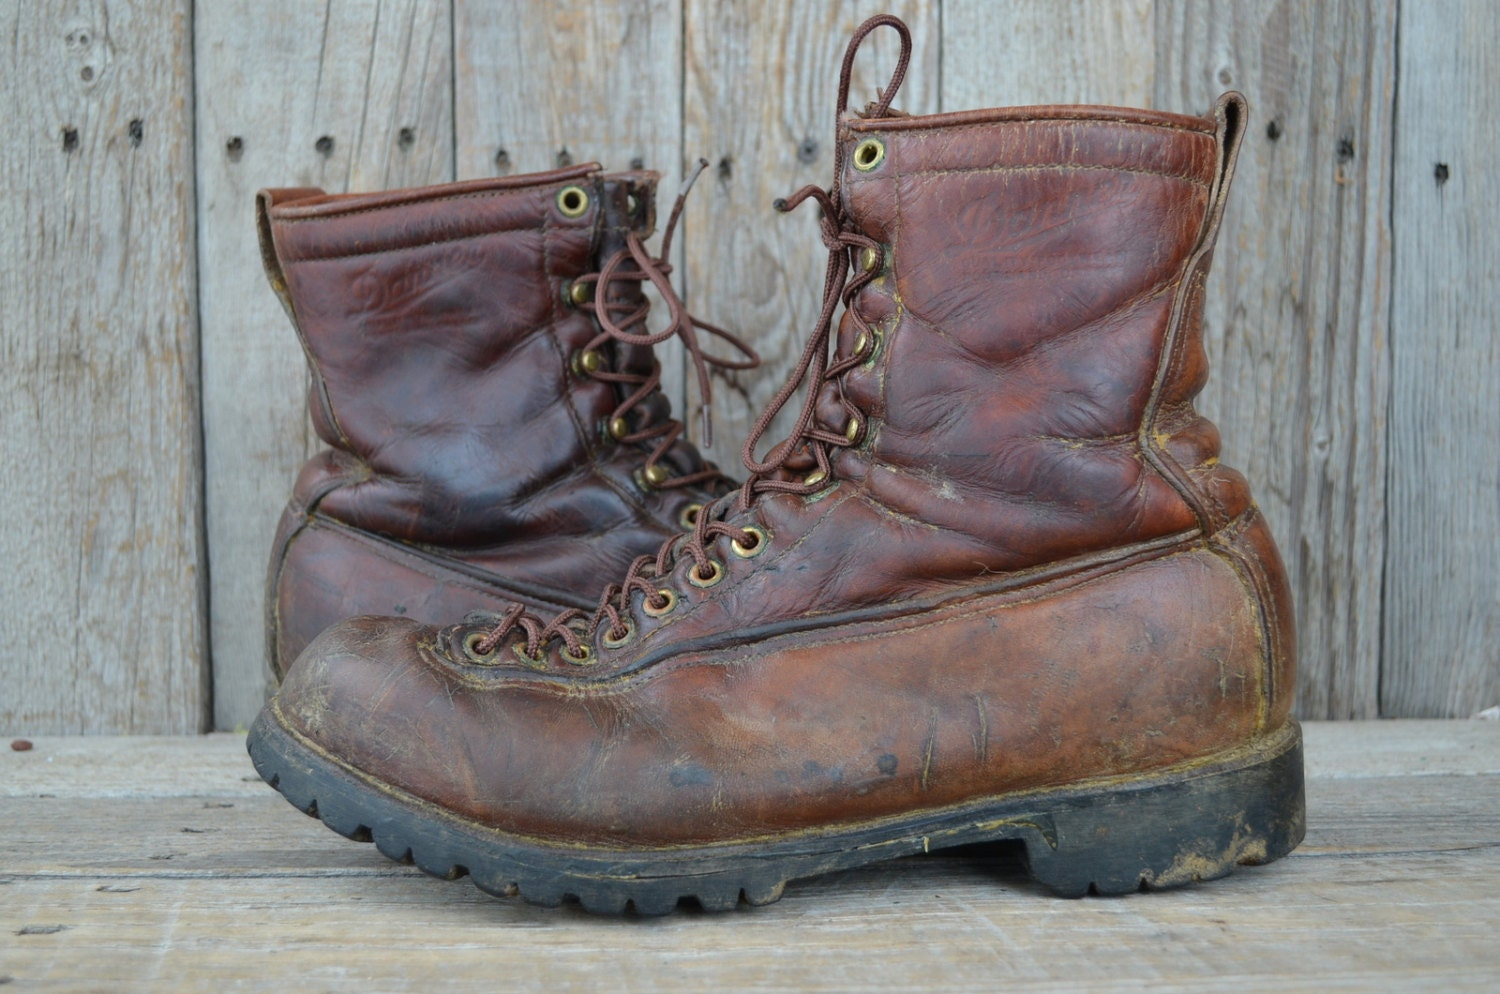 Vintage Danner Lace To Toe Mountaineer Hiking Monkey Work